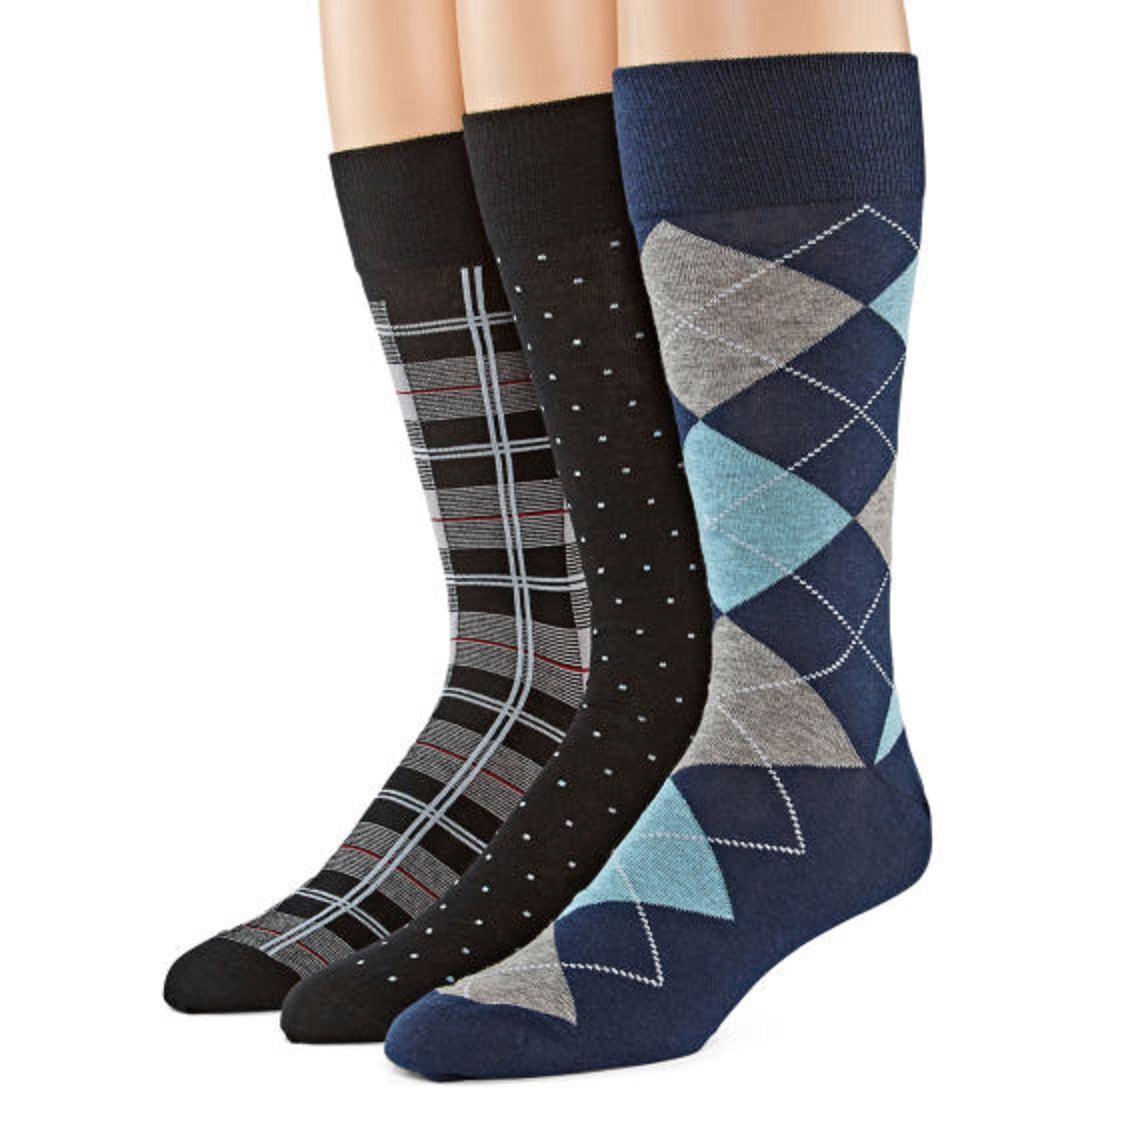 cee70a3055802 Mens Socks: Crew, No-Show, Dress & Cotton - JCPenney